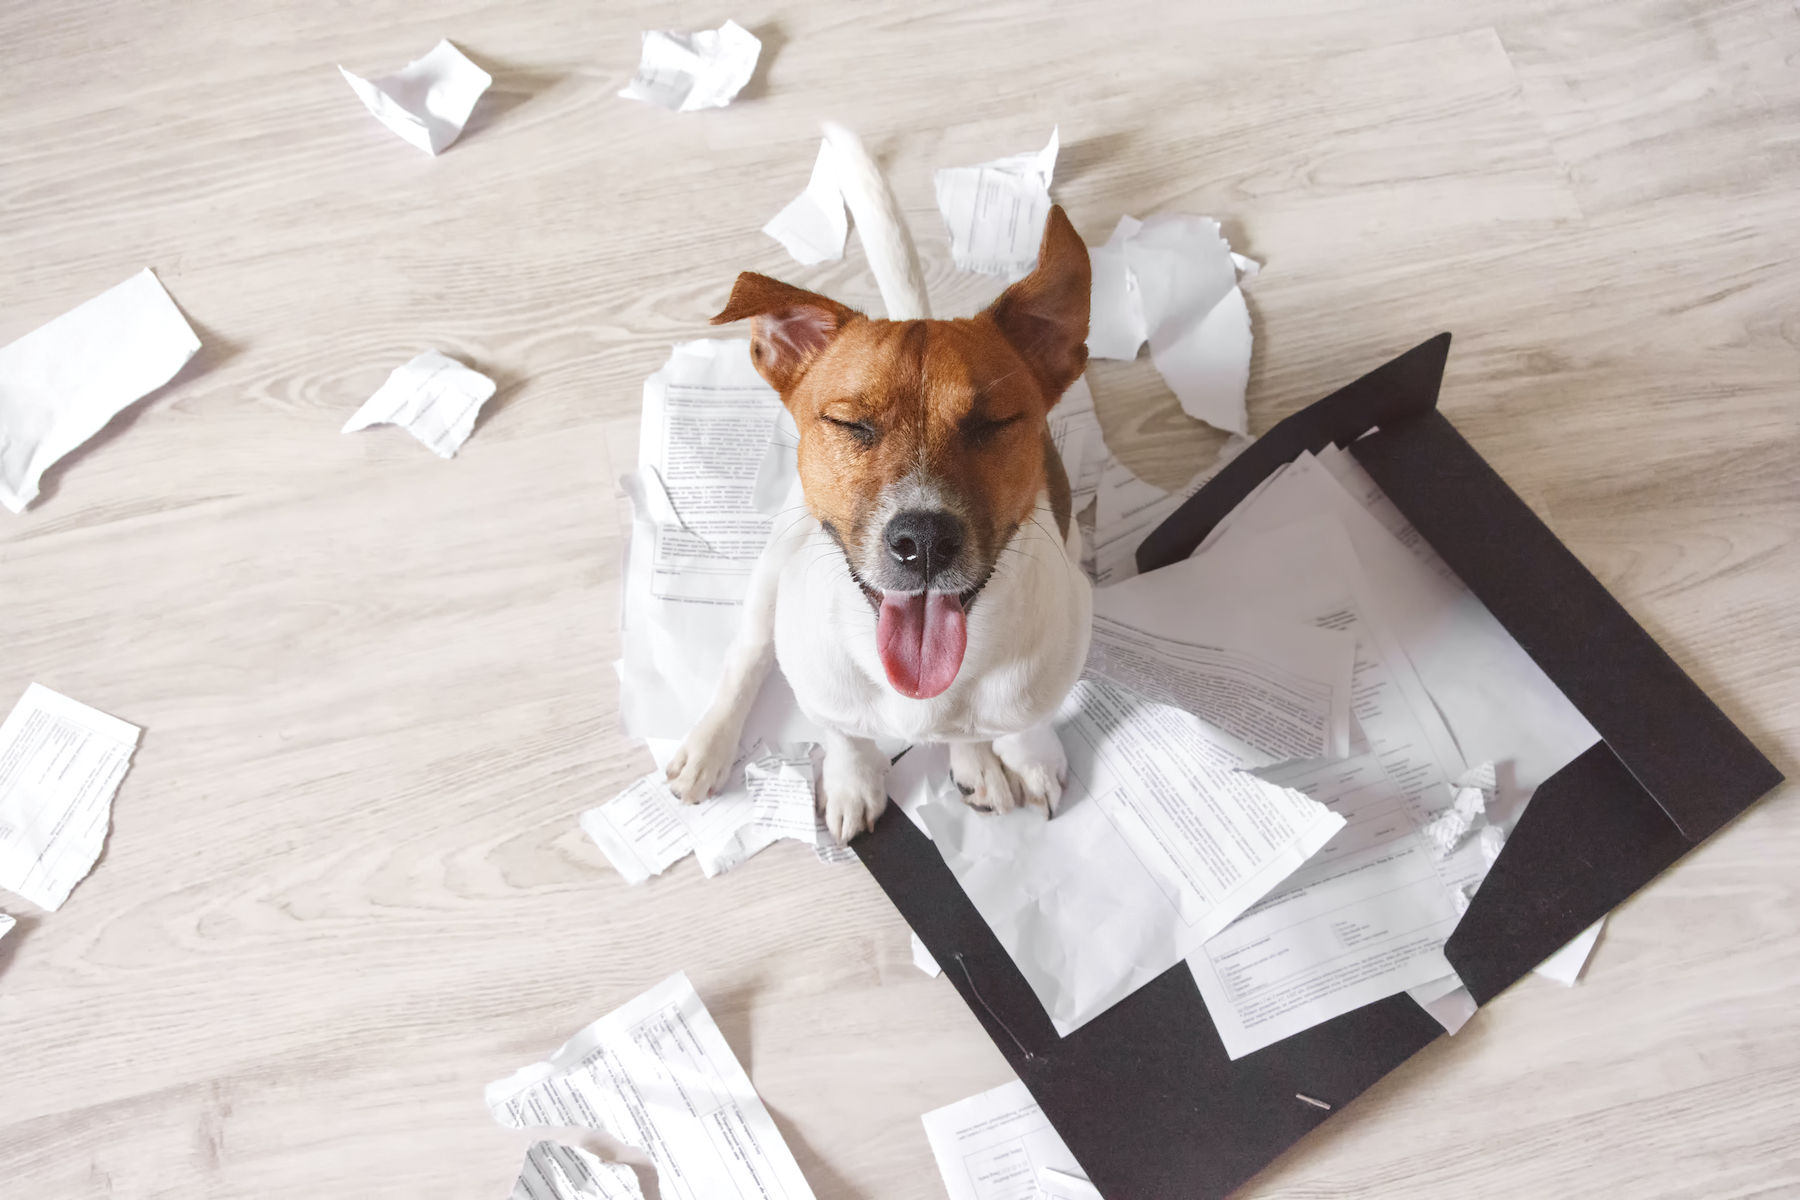 Canva - Bad dog sitting on the torn pieces of documents